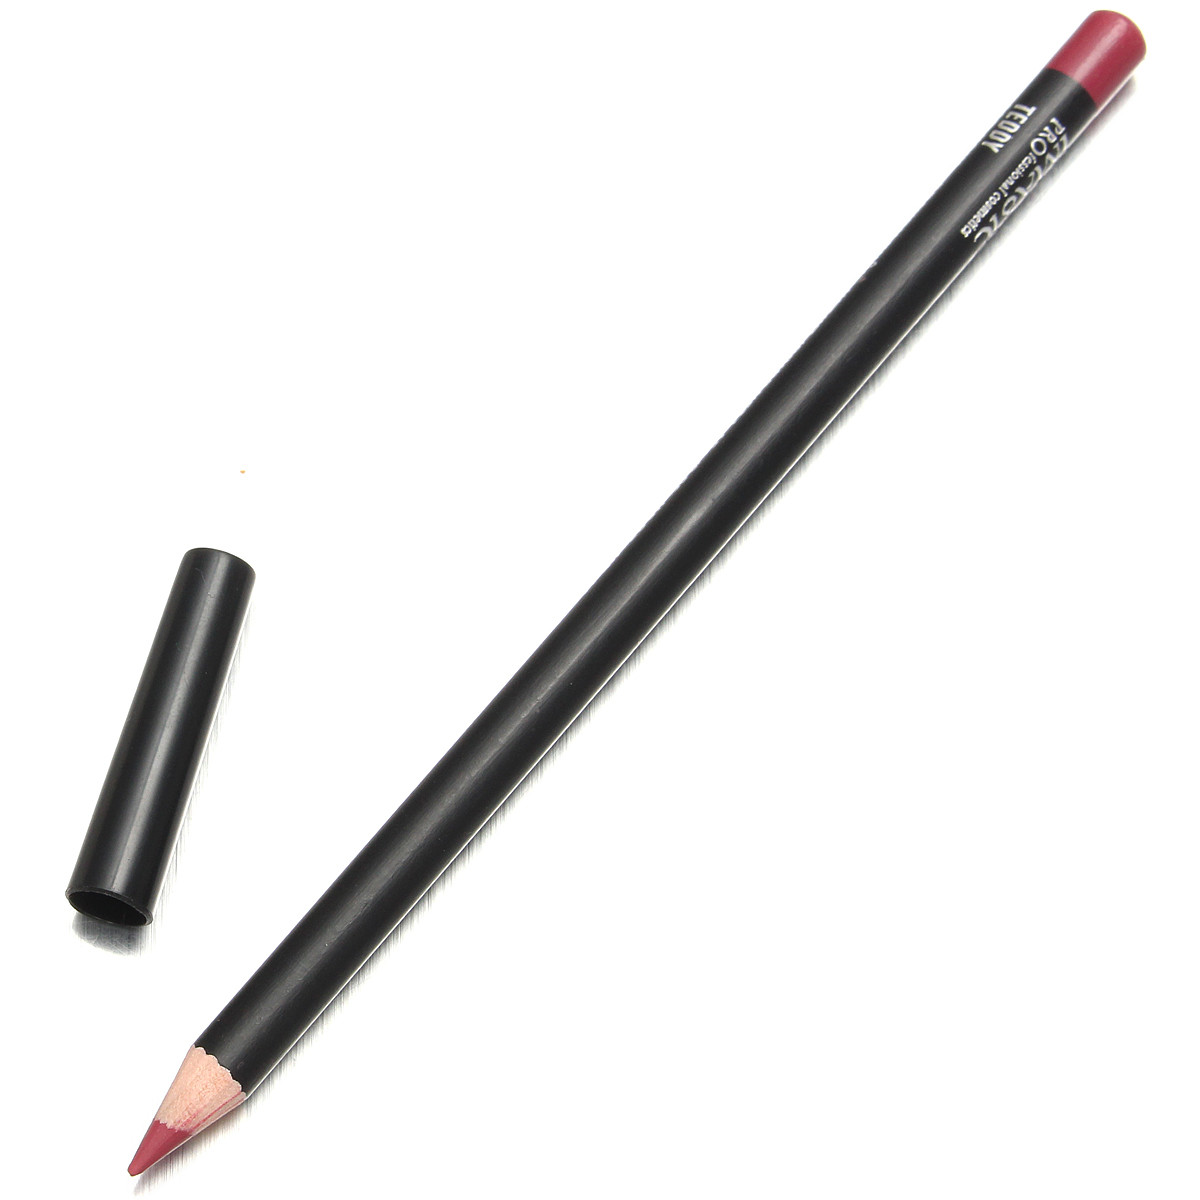 12 Colors Lip Liner Makeup Pencil Long Lasting Natural Waterproof Cosmetic Pen